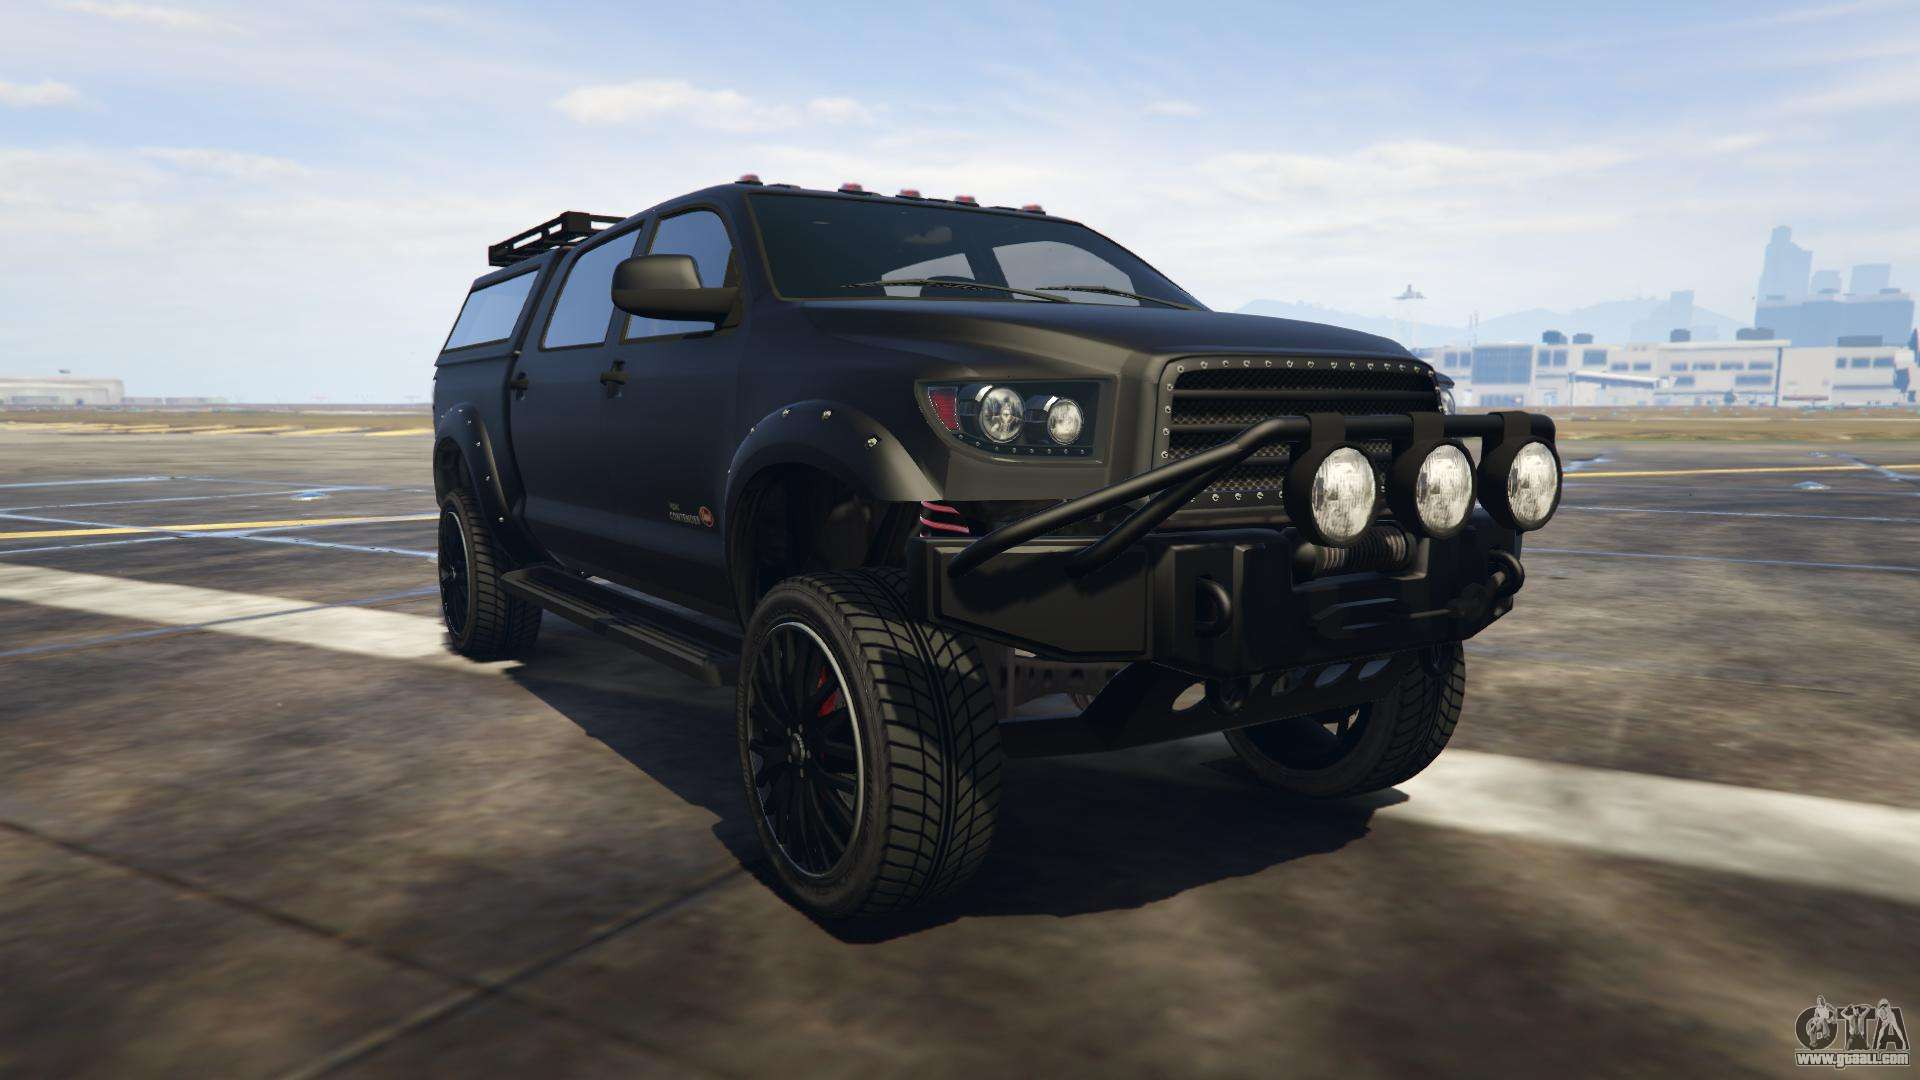 vapid contender from gta 5 screenshots features and description of the off road vehicle. Black Bedroom Furniture Sets. Home Design Ideas